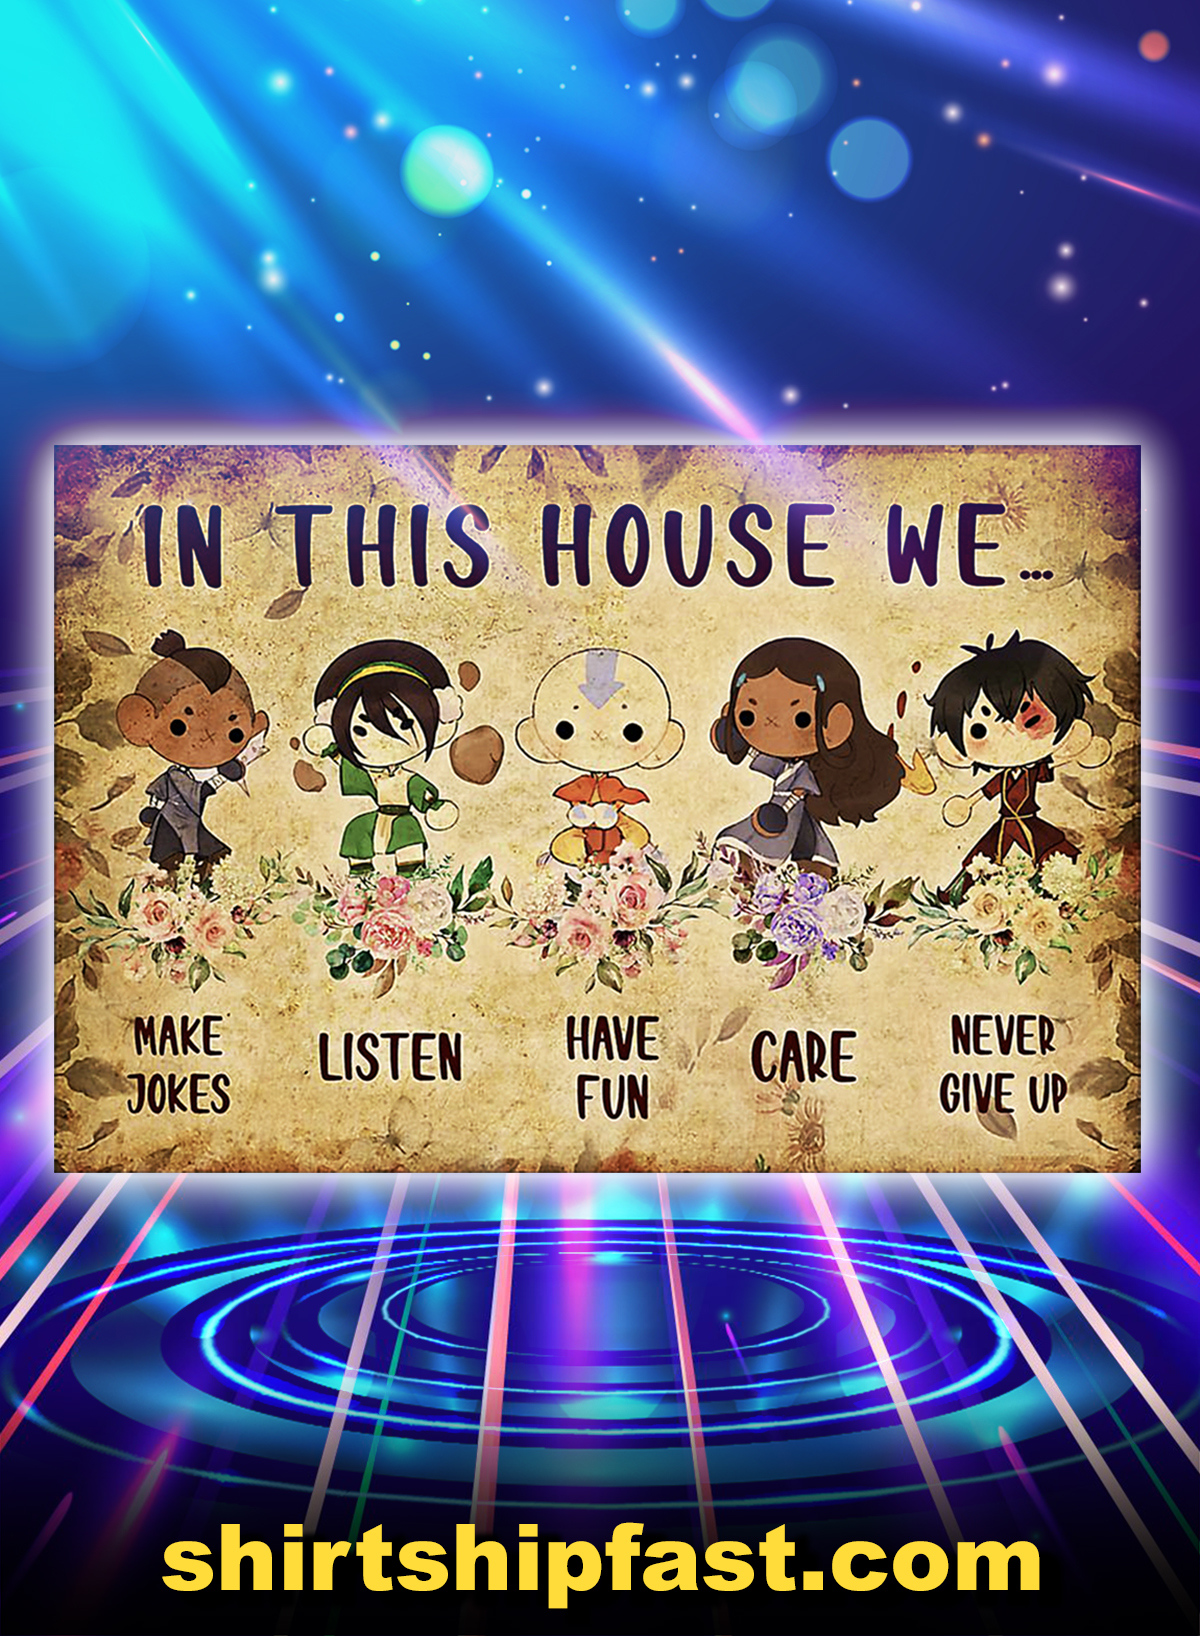 The last airbender in this house we poster - A1